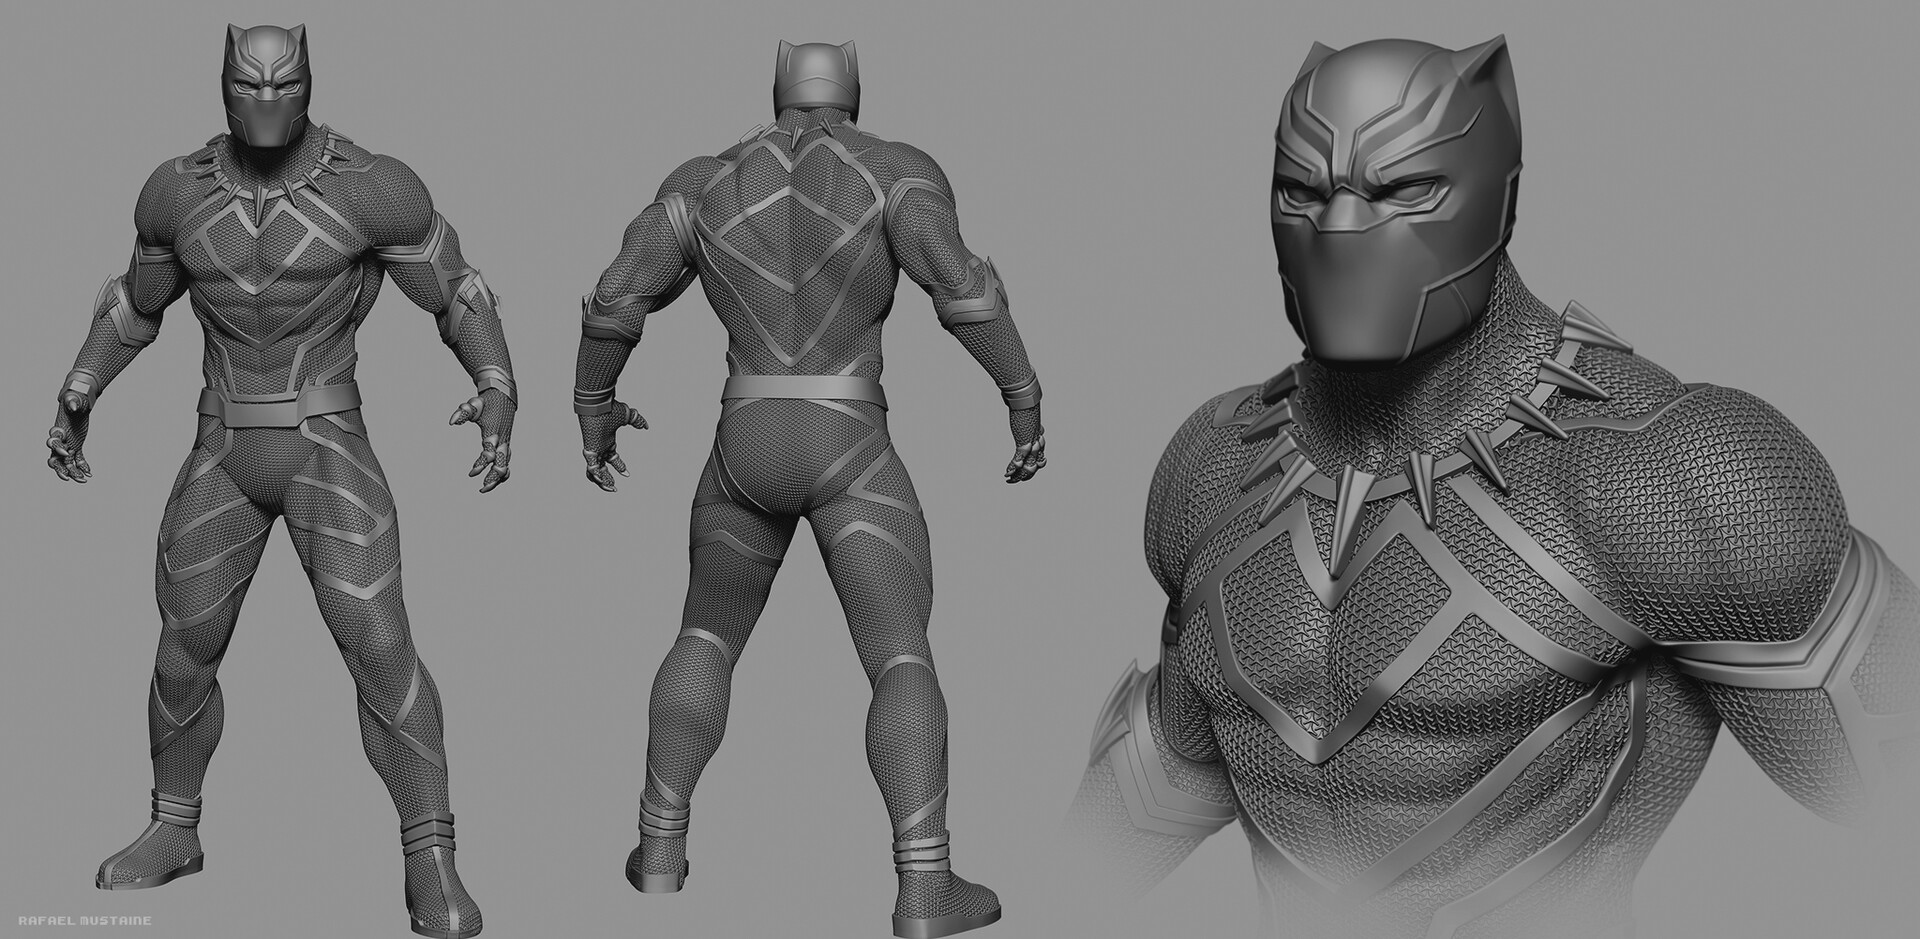 Rafael mustaine blackpanther rm zbrush